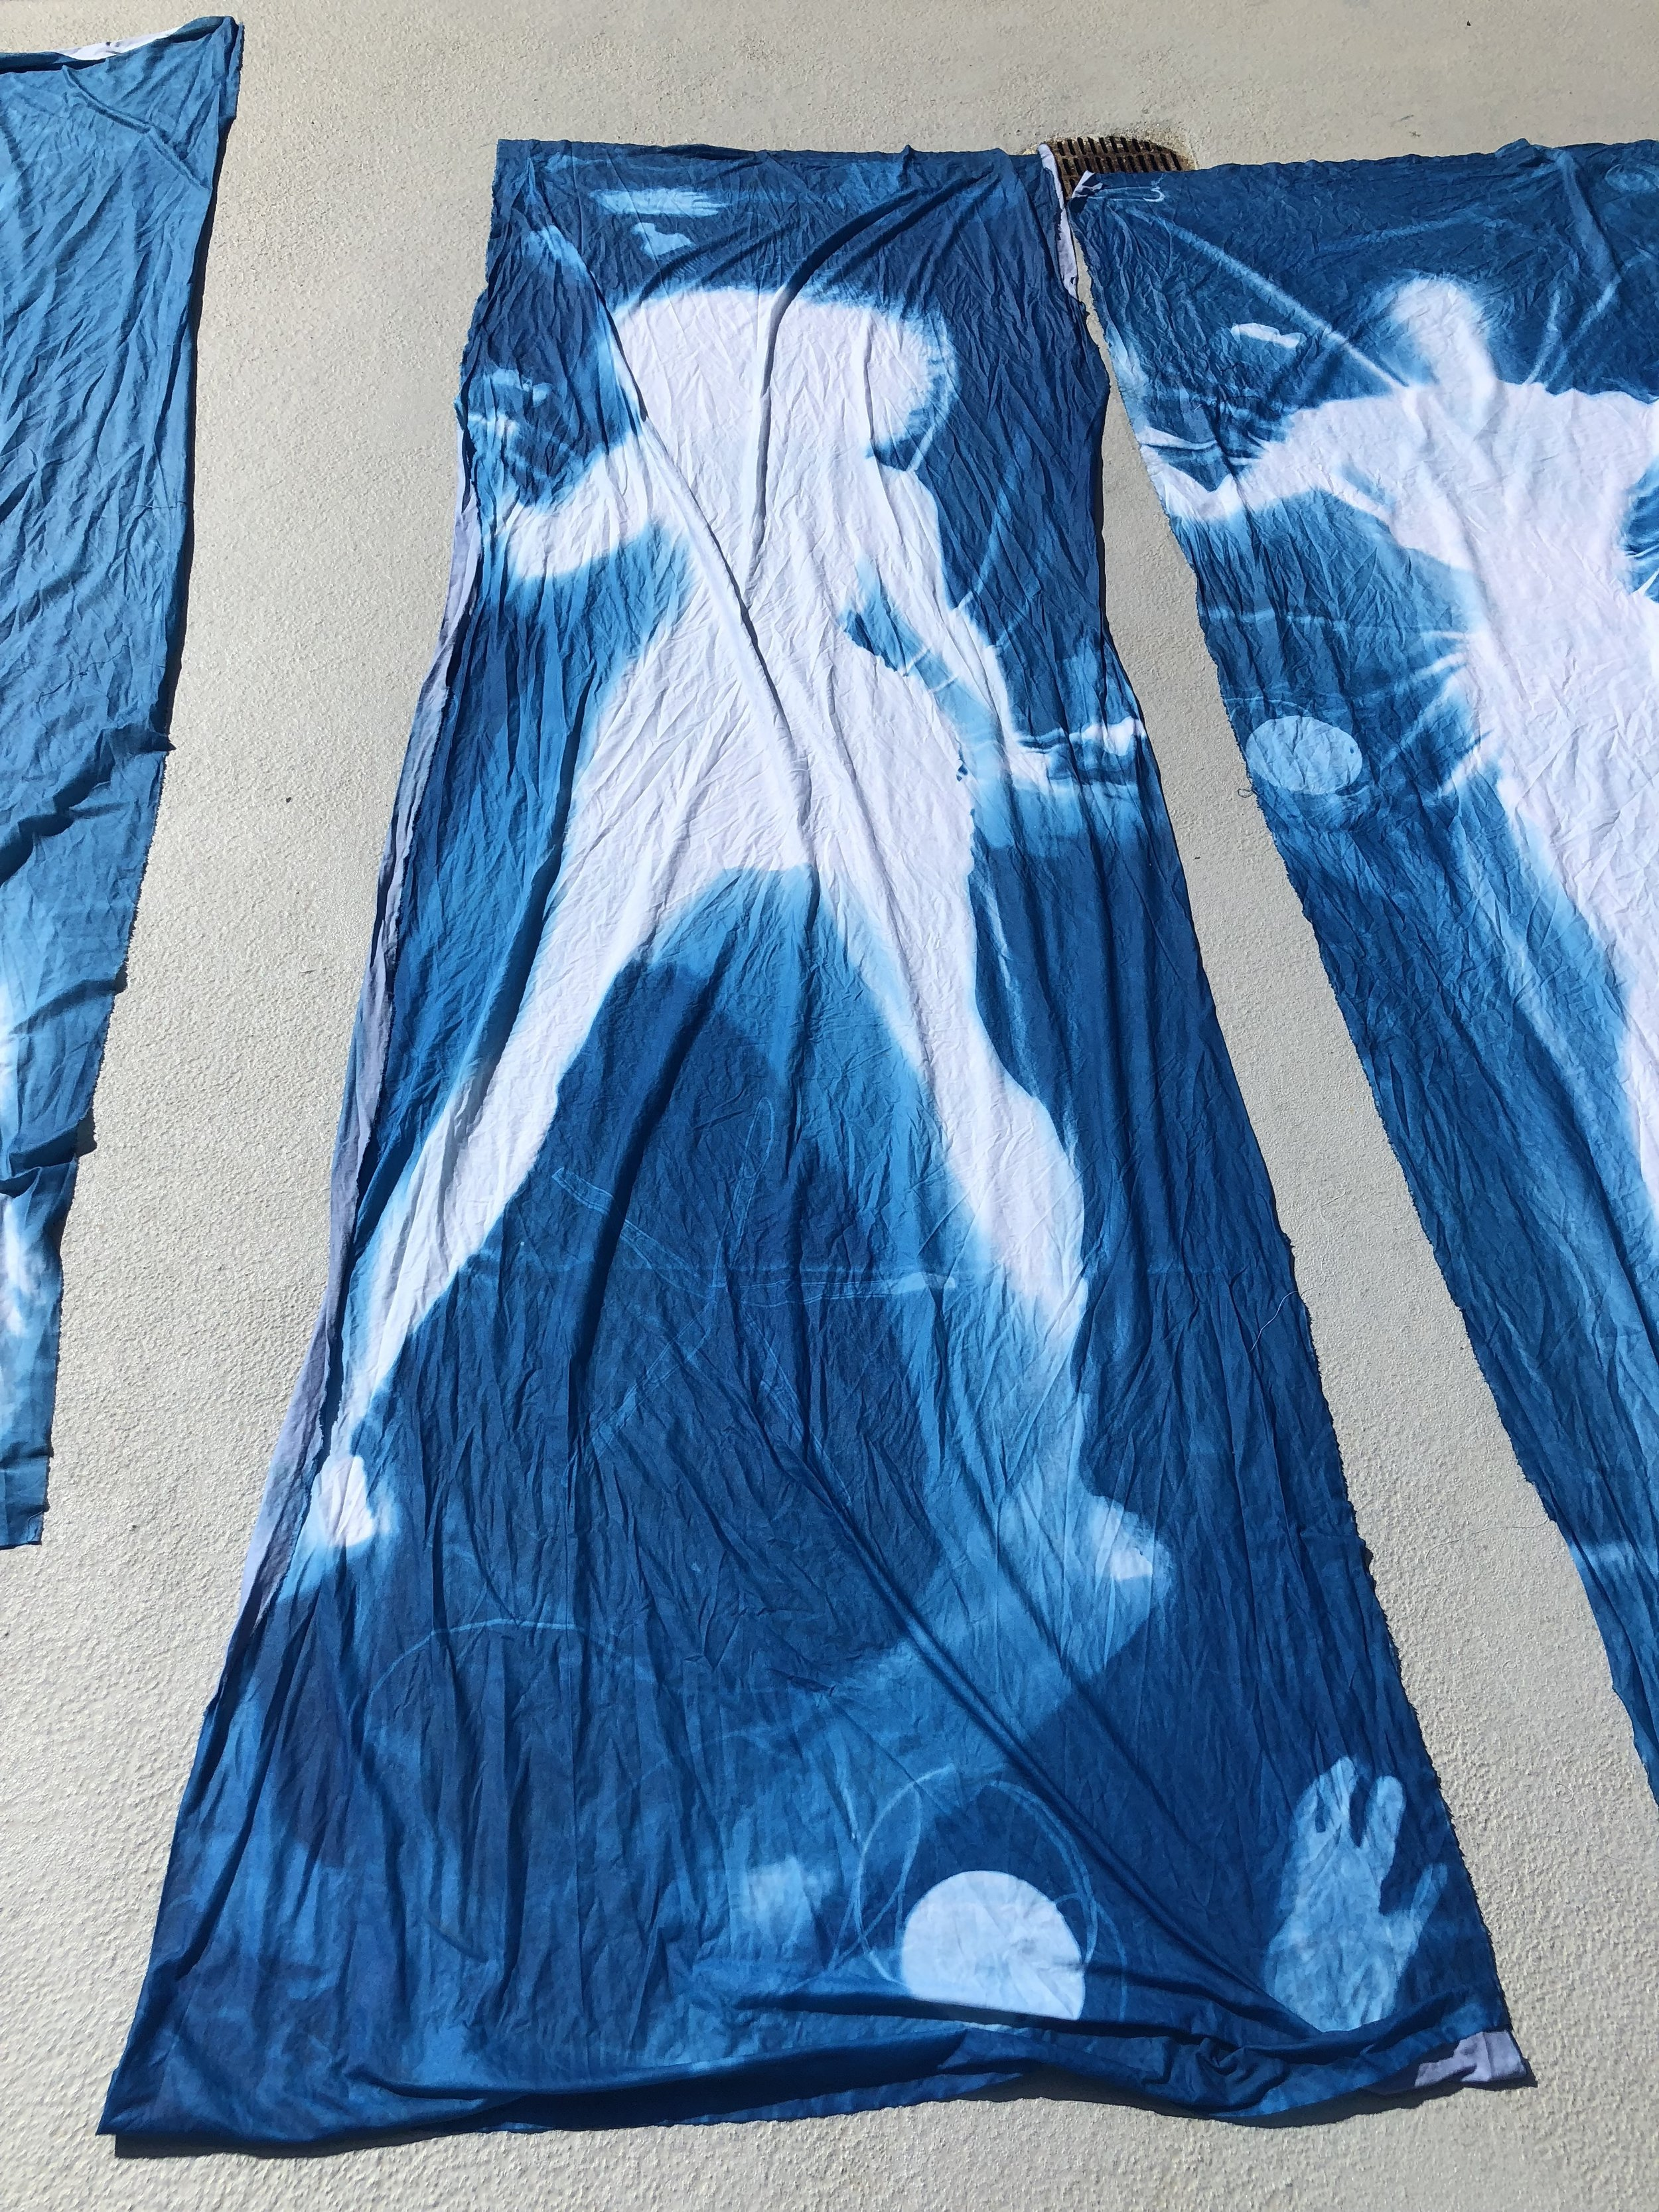 cyanotype artist image workshop texas via hollydgray.com